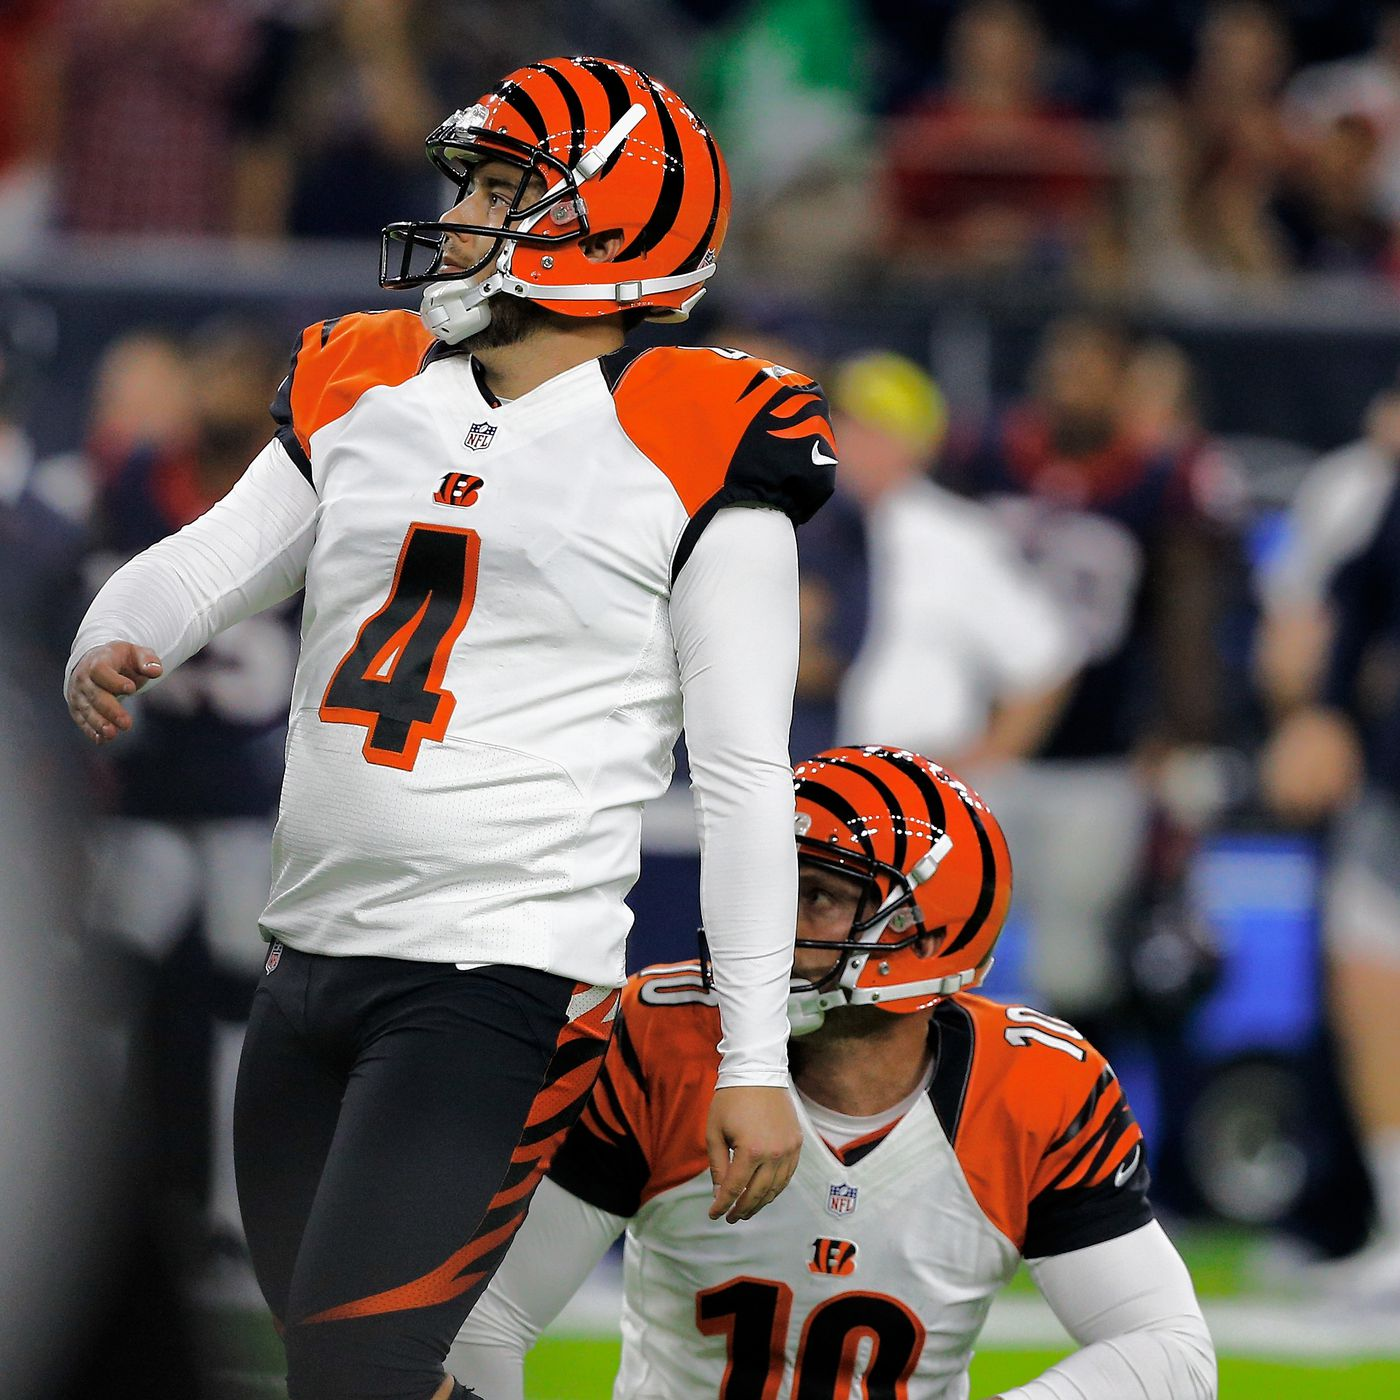 Reviewing whether Bengals should re-sign kicker Randy Bullock ...